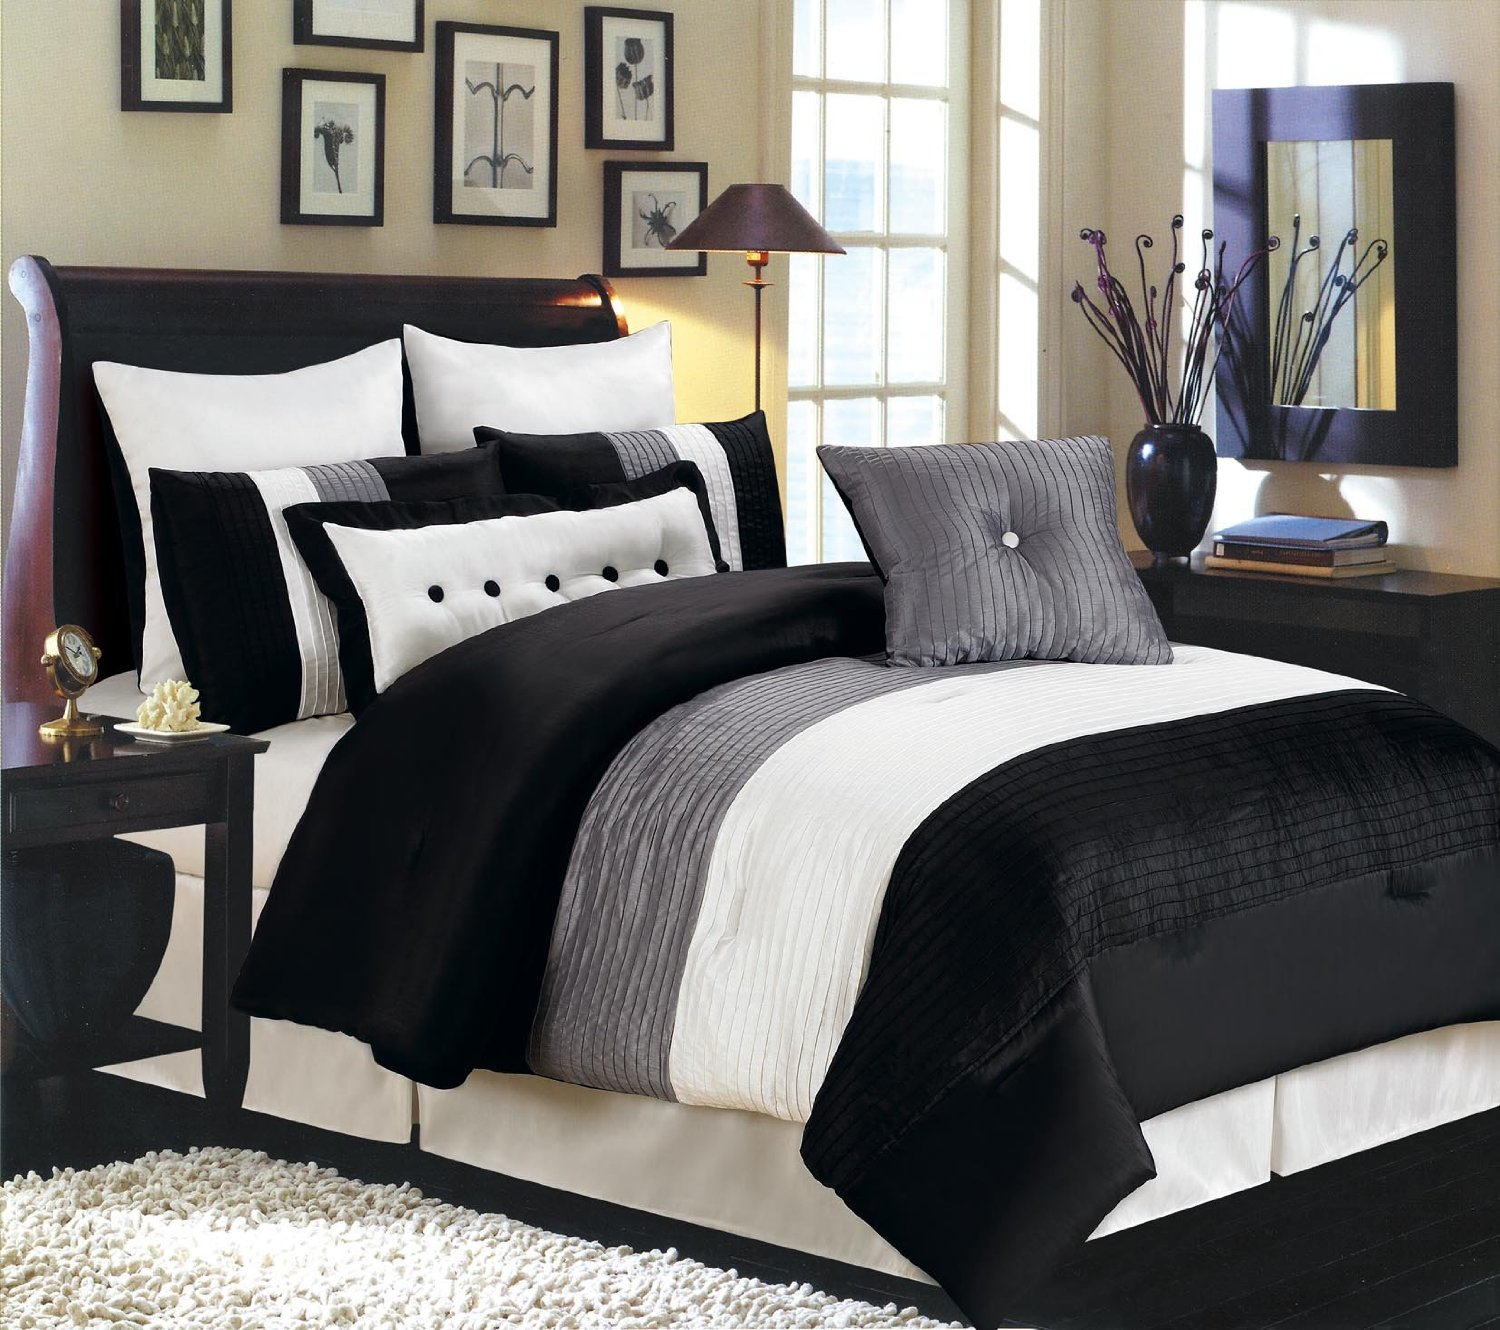 chic Bedroom with black and white comforter sets and laminate porcelain floor also curtain and sidetables